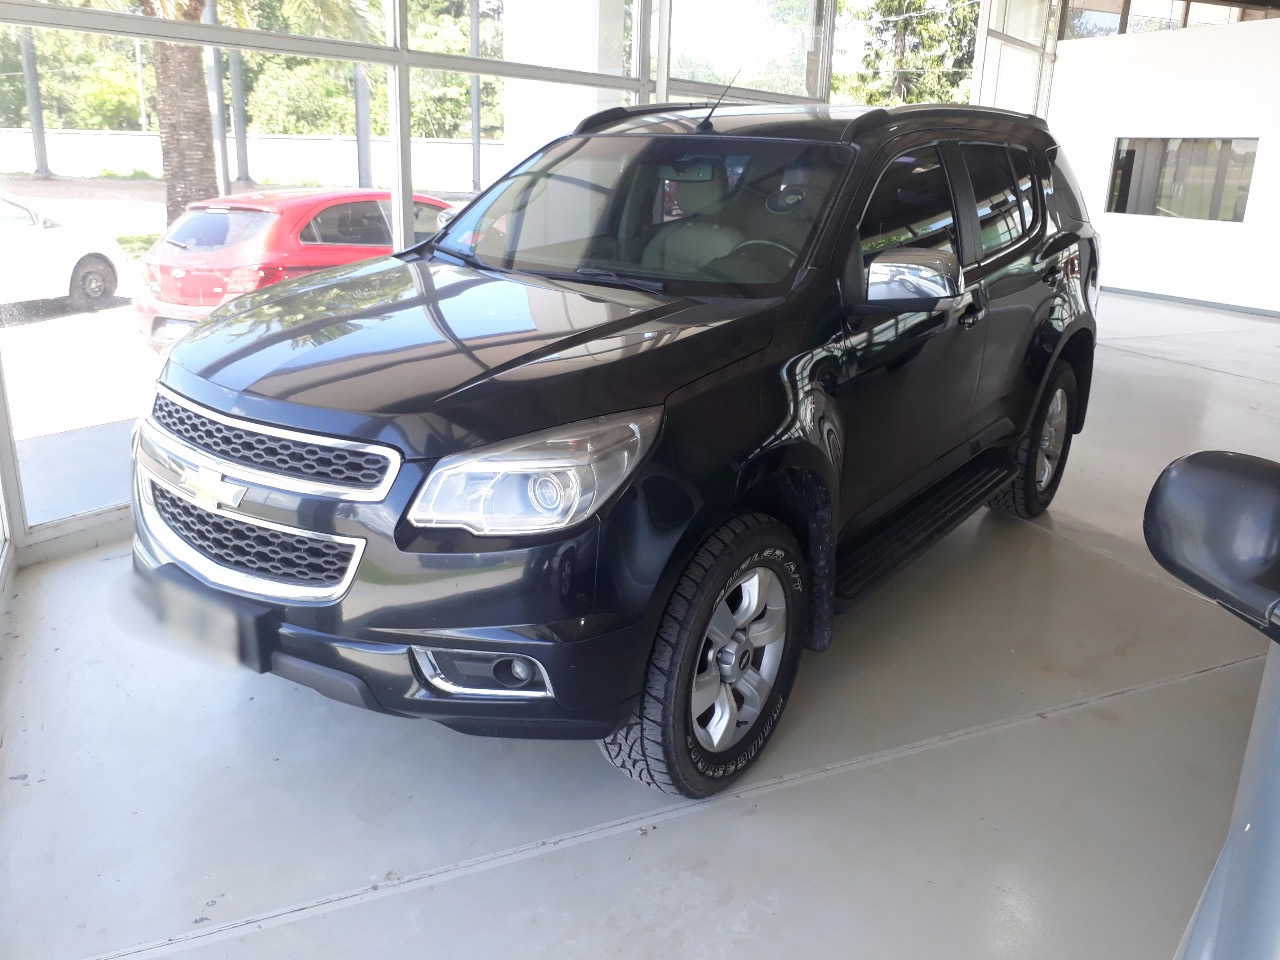 2013 Chevrolet Trailblazer LTZ 1,4L